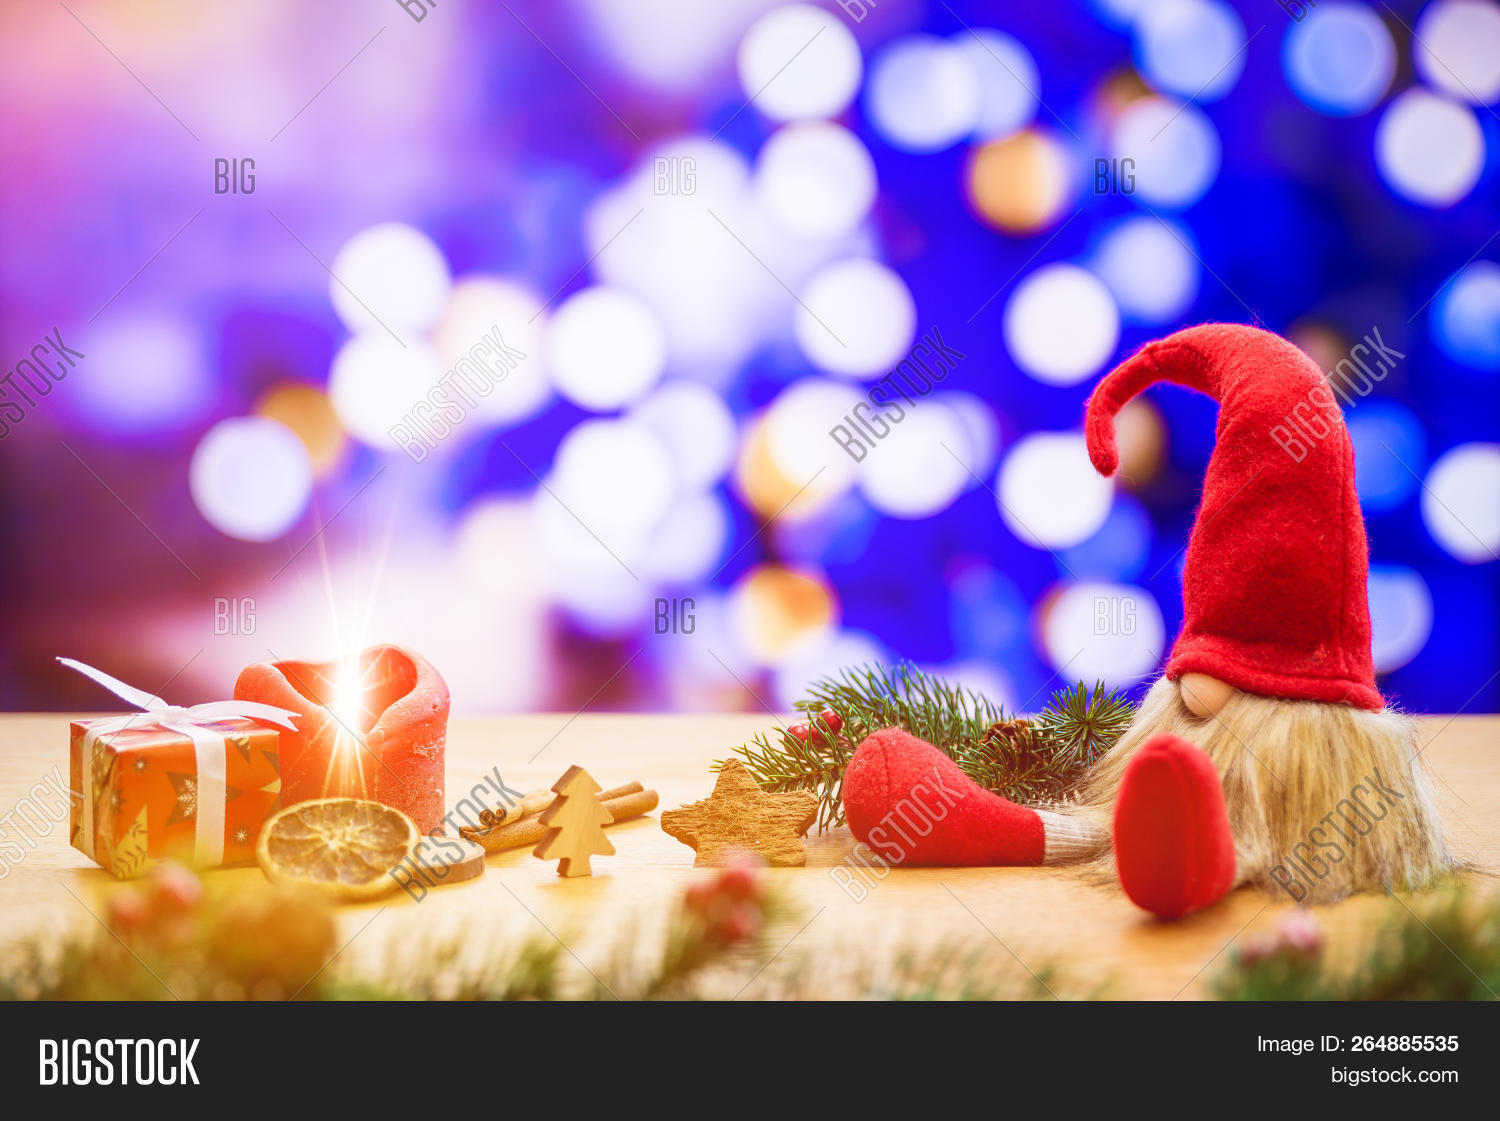 Christmas Background Gif Red Sitting Christmas Image Photo Free Trial Bigstock